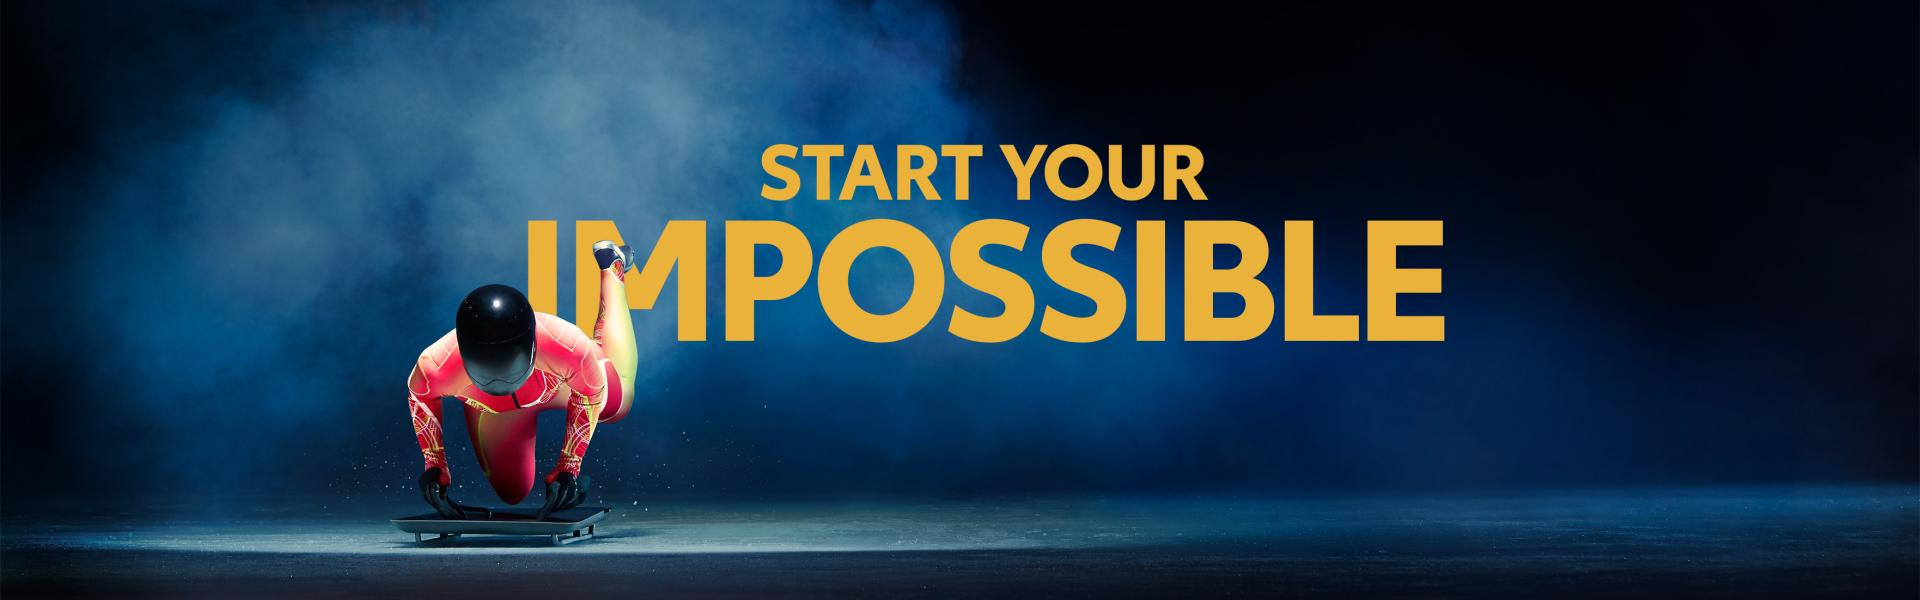 "Toyota Launches ""Start Your Impossible"" Global Corporate  Initiative"